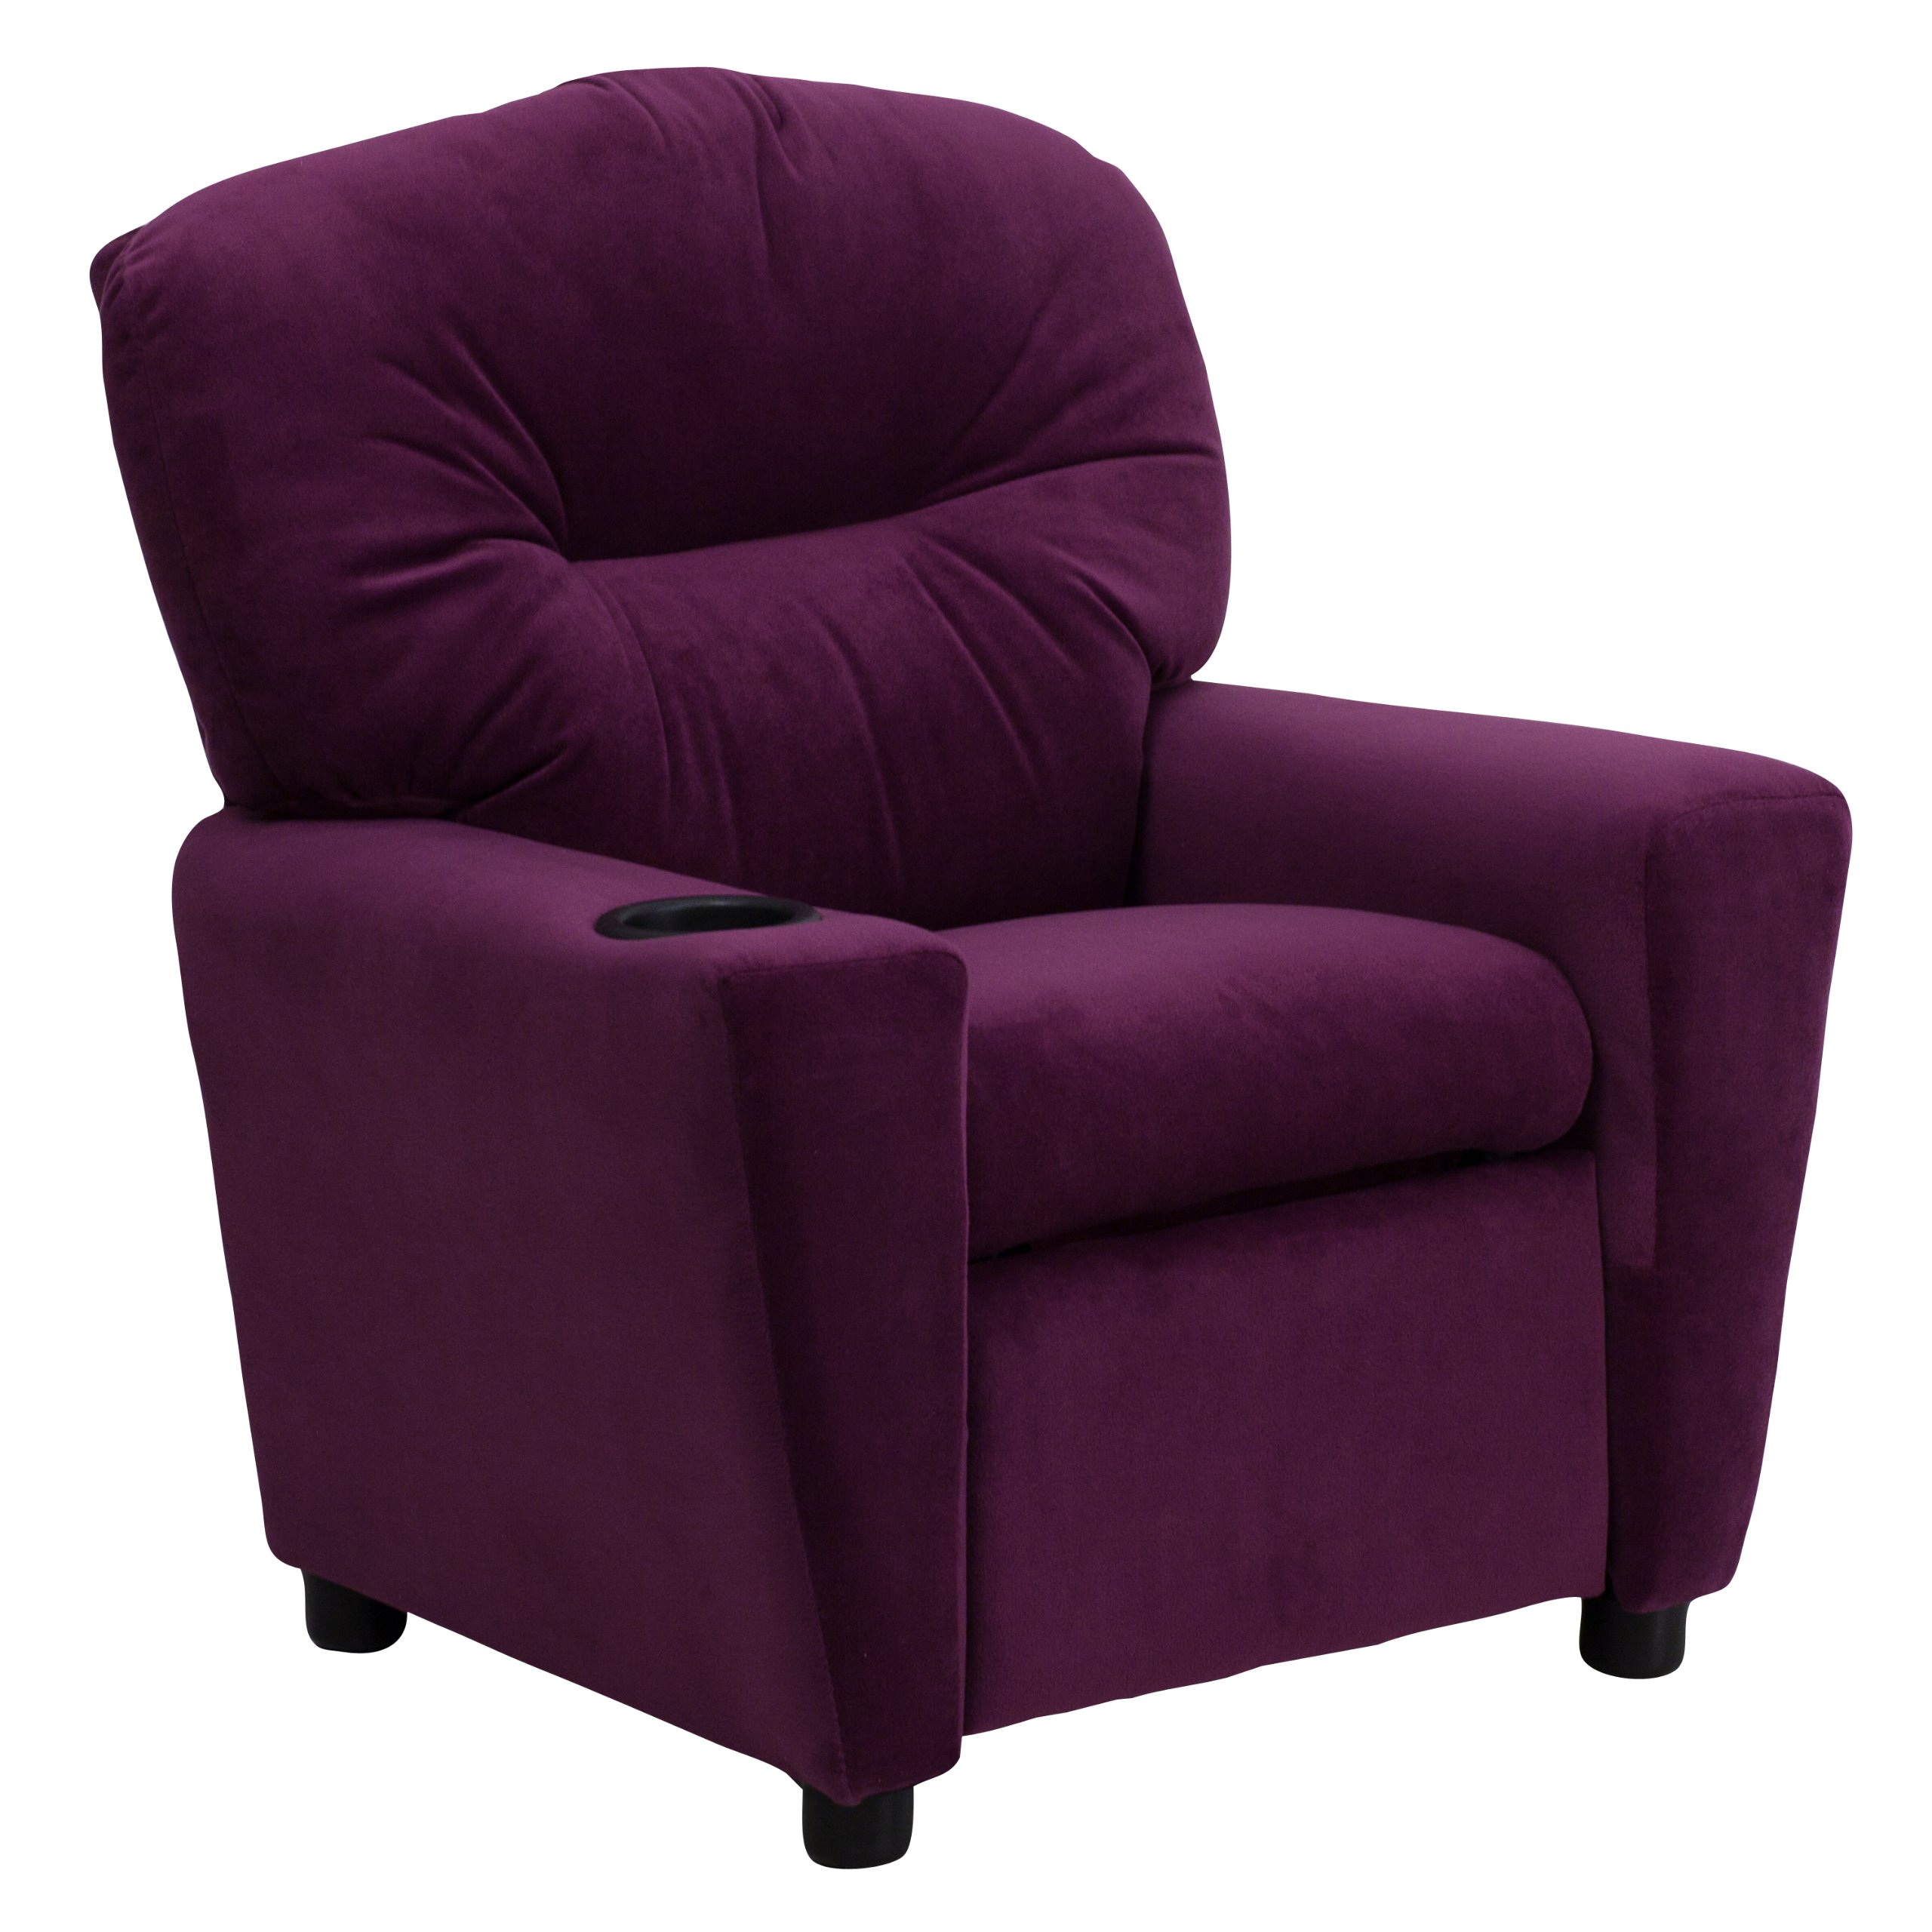 Winston Direct Kids' Series Contemporary Purple Microfiber Recliner with Cup Holder